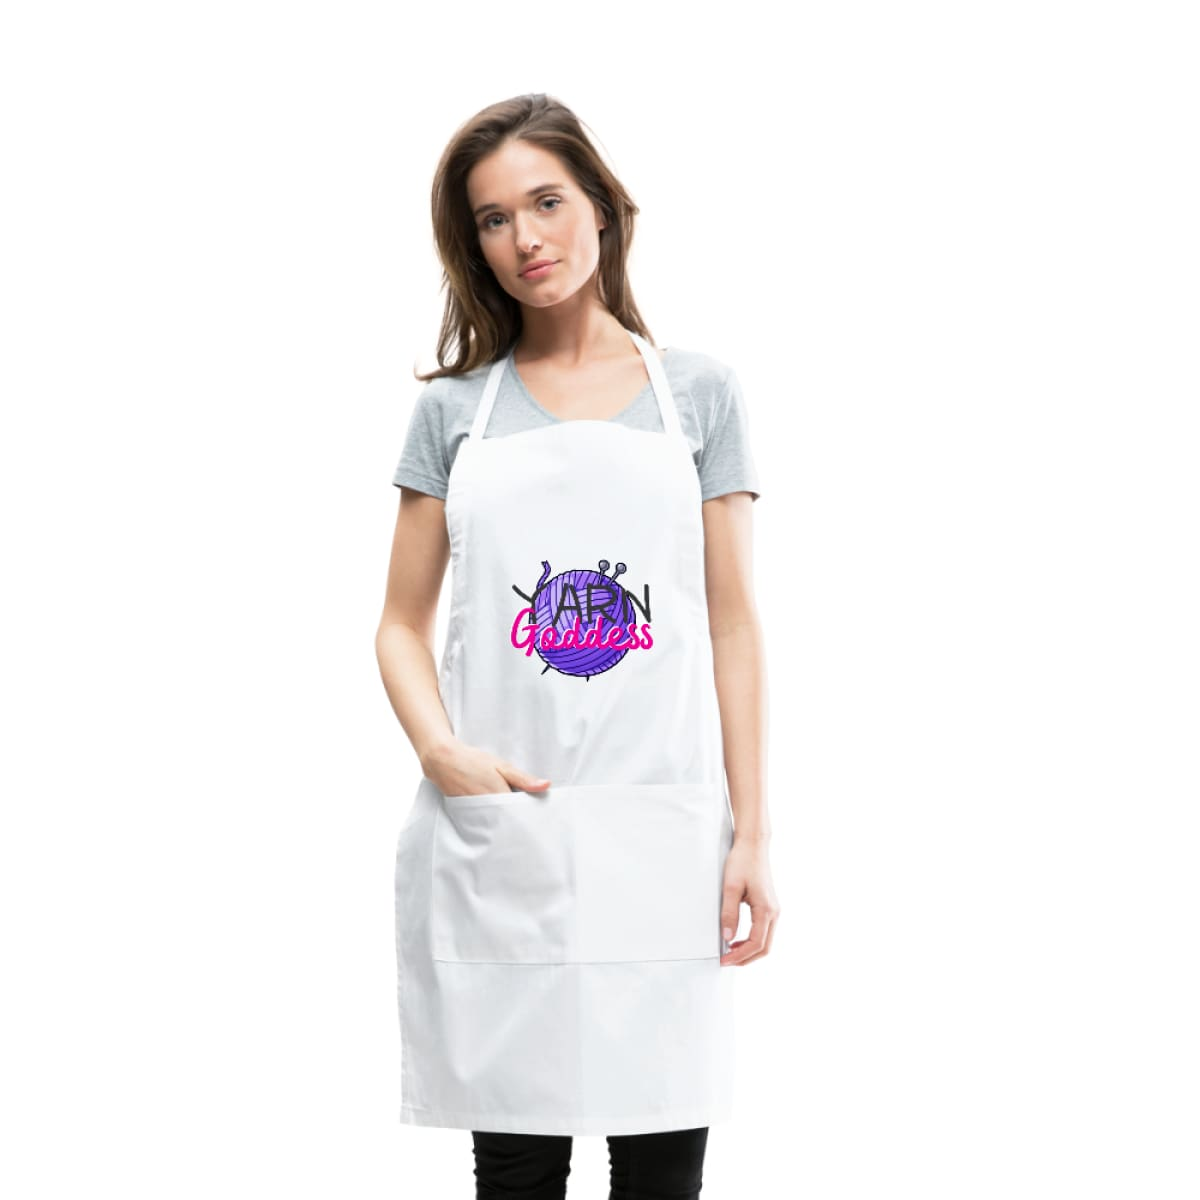 Yarn Goddess Adjustable Apron - white - Adjustable Apron